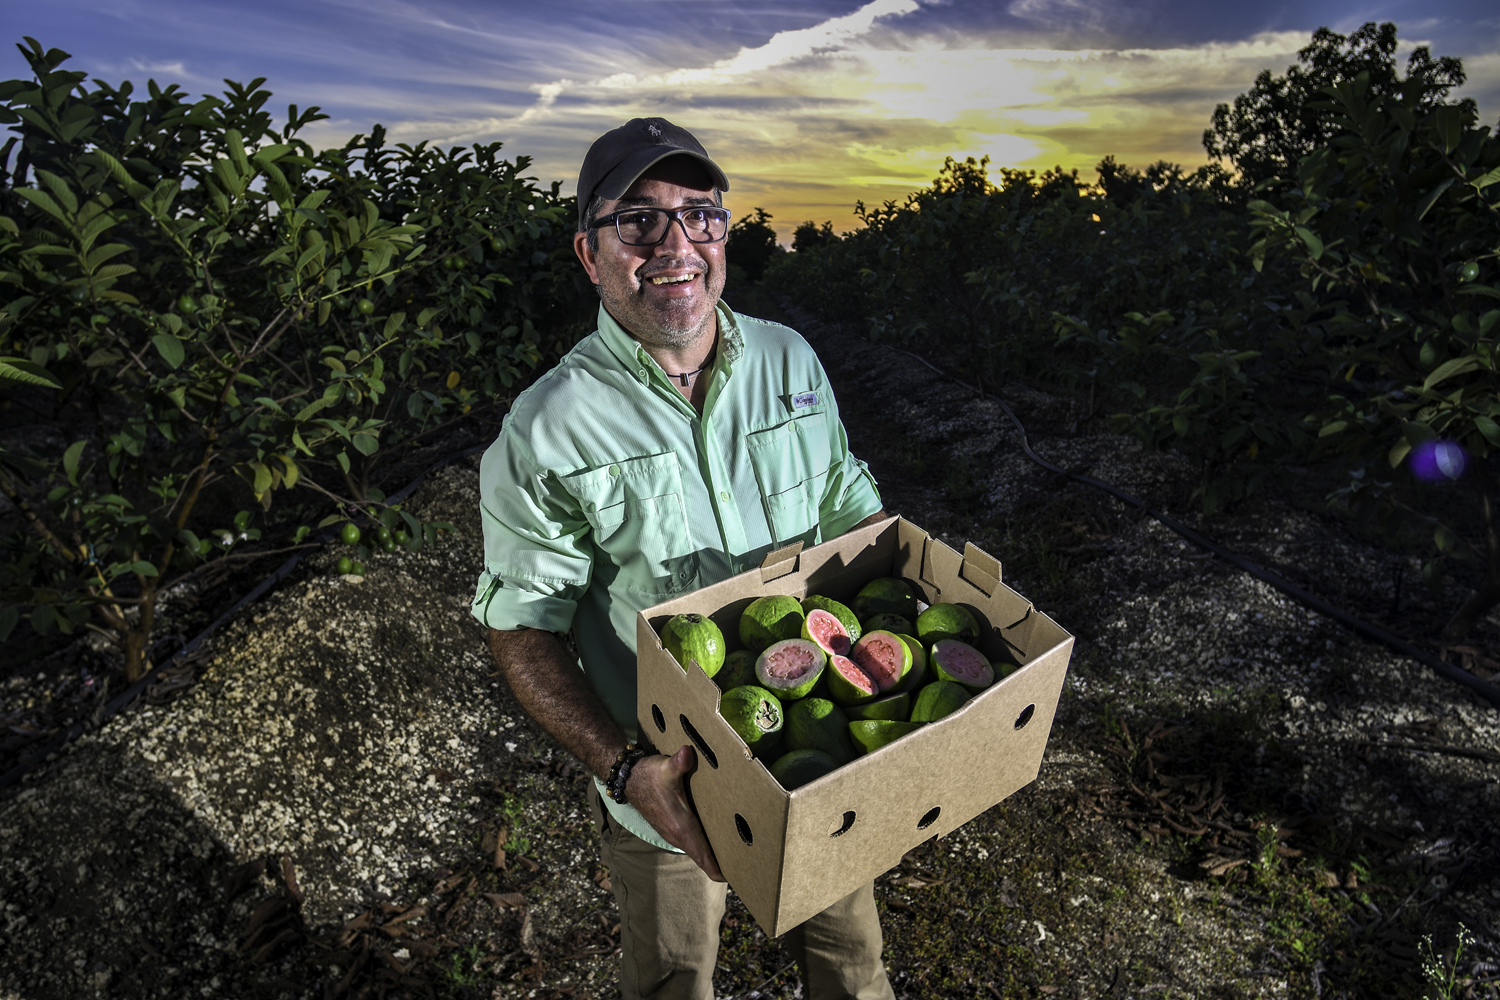 Frank Martinez, owner of A.R. Produce, grows pink guava on 10 acres of his farm in Homestead, Fla. The fruit is native to tropical areas of the Americas, and most of the guavas that are imported into the United States come from places like Brazil, the Dominican Republic and Mexico. Mr. Martinez sees a growing demand for the type of guava he grew up eating in Cuba. PHOTOGRAPHY BY JIM RASSOL